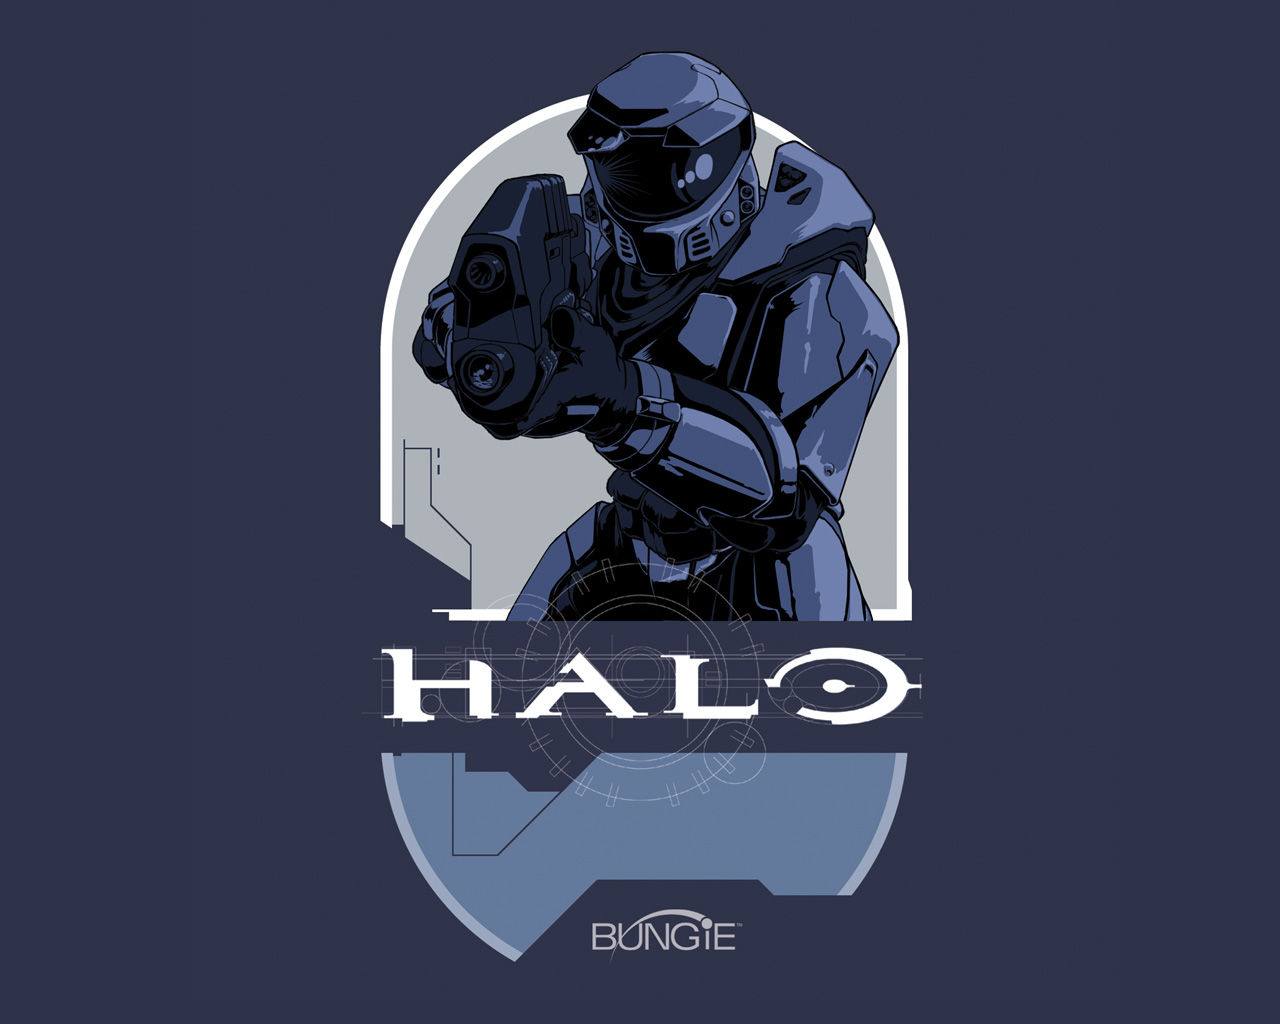 Halo Combat Evolved 2001 promotional art   MobyGames 1280x1024